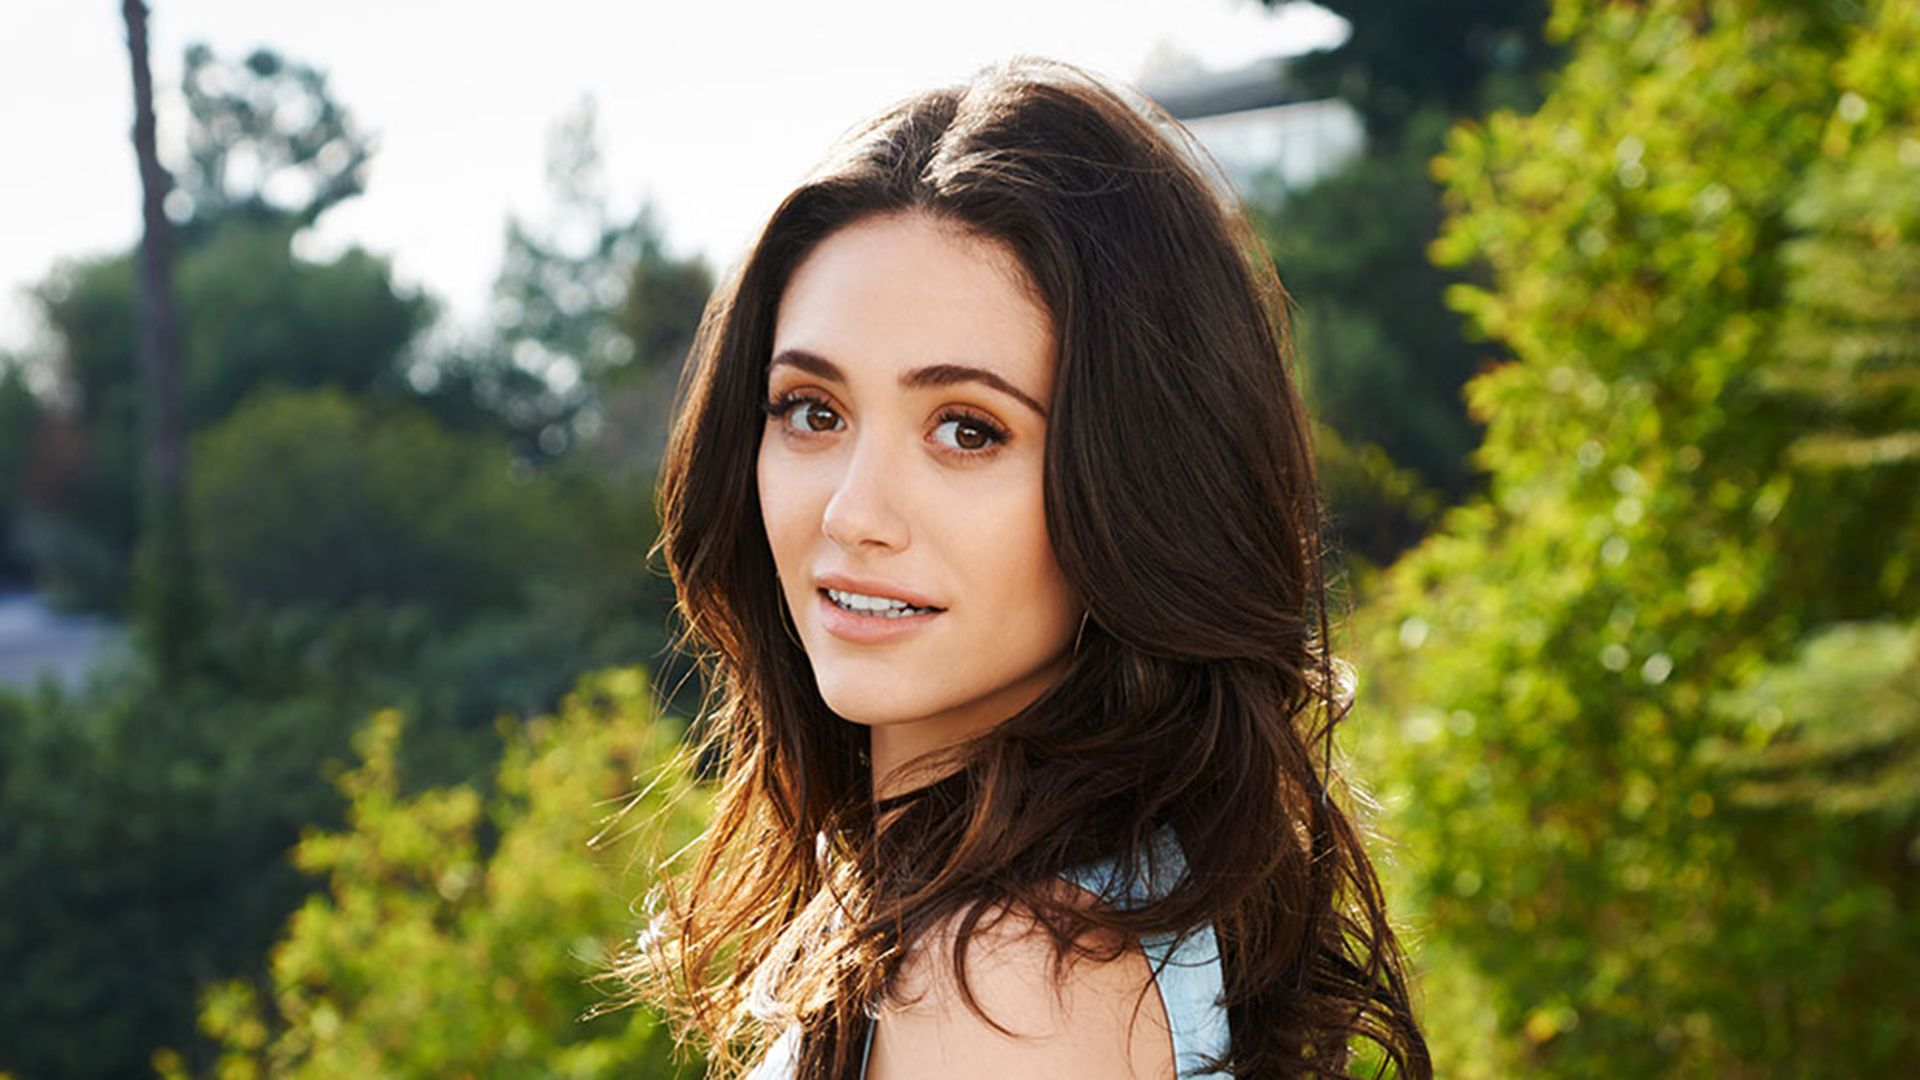 Emmy Rossum Hd Wallpaper Emmy Rossum 1624440 Hd